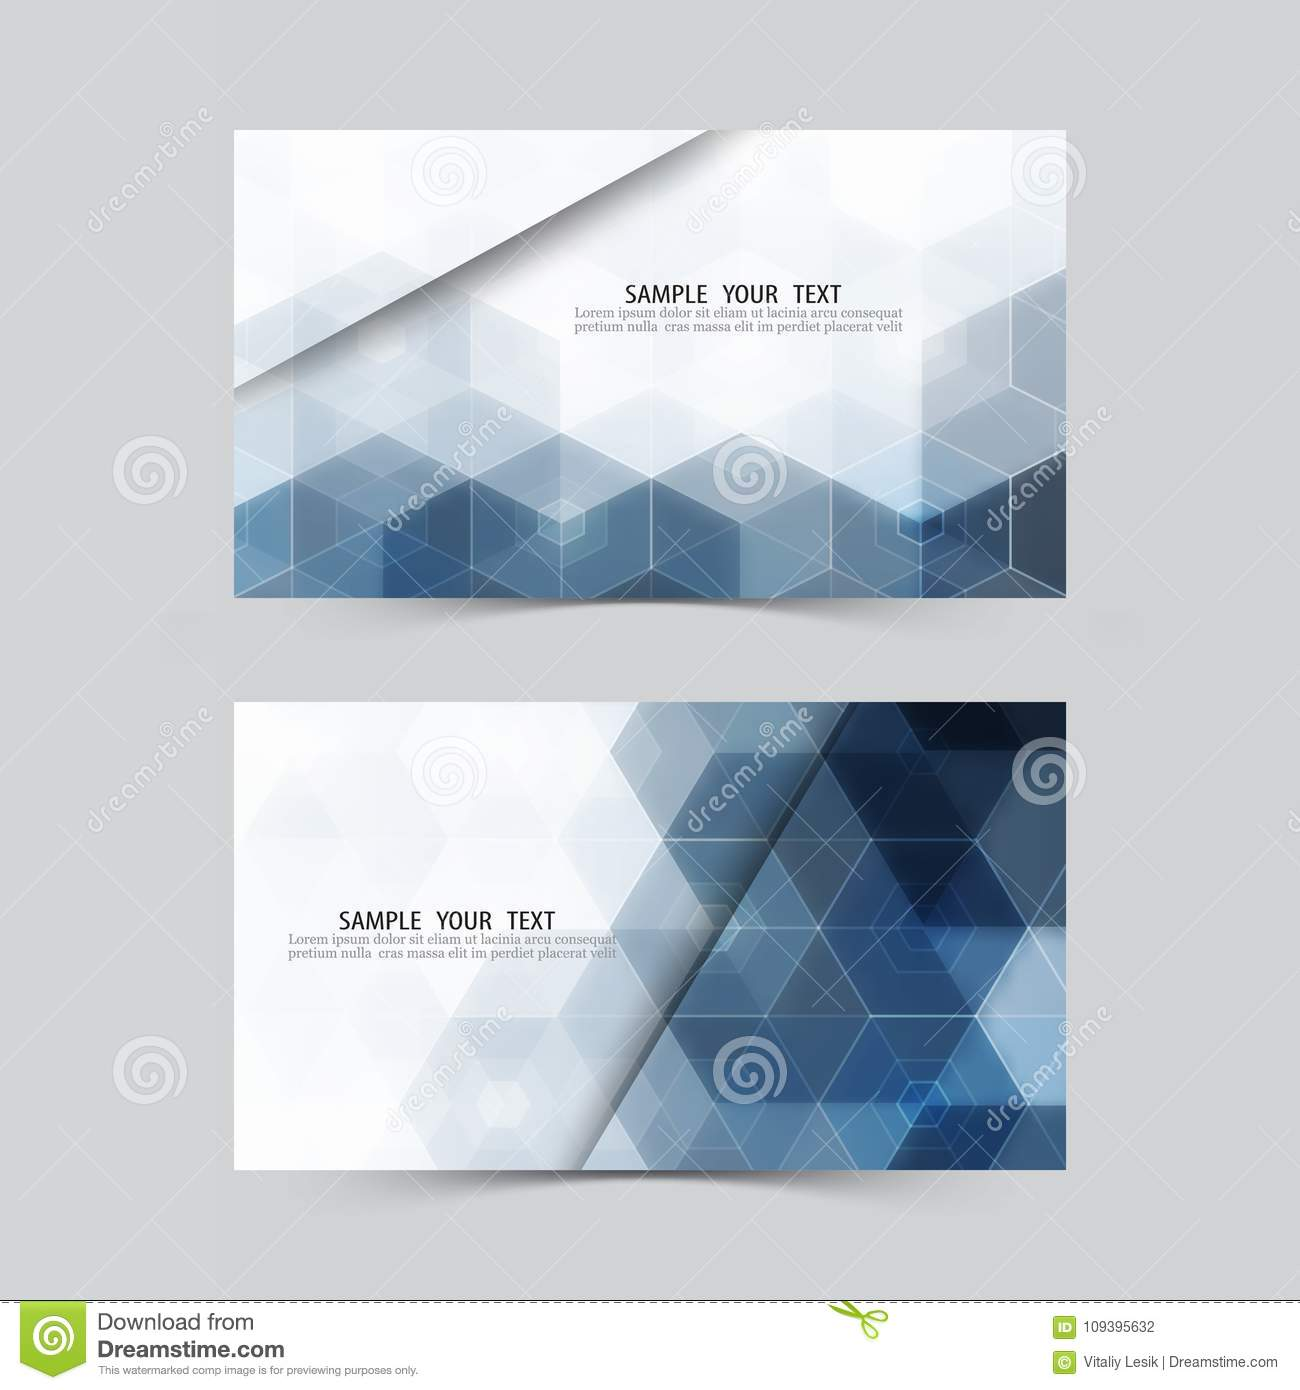 Hexagone Bleu Abrgez Le Fond Ensemble De Drapeaux Calibre D Invitation Cartes Crdit